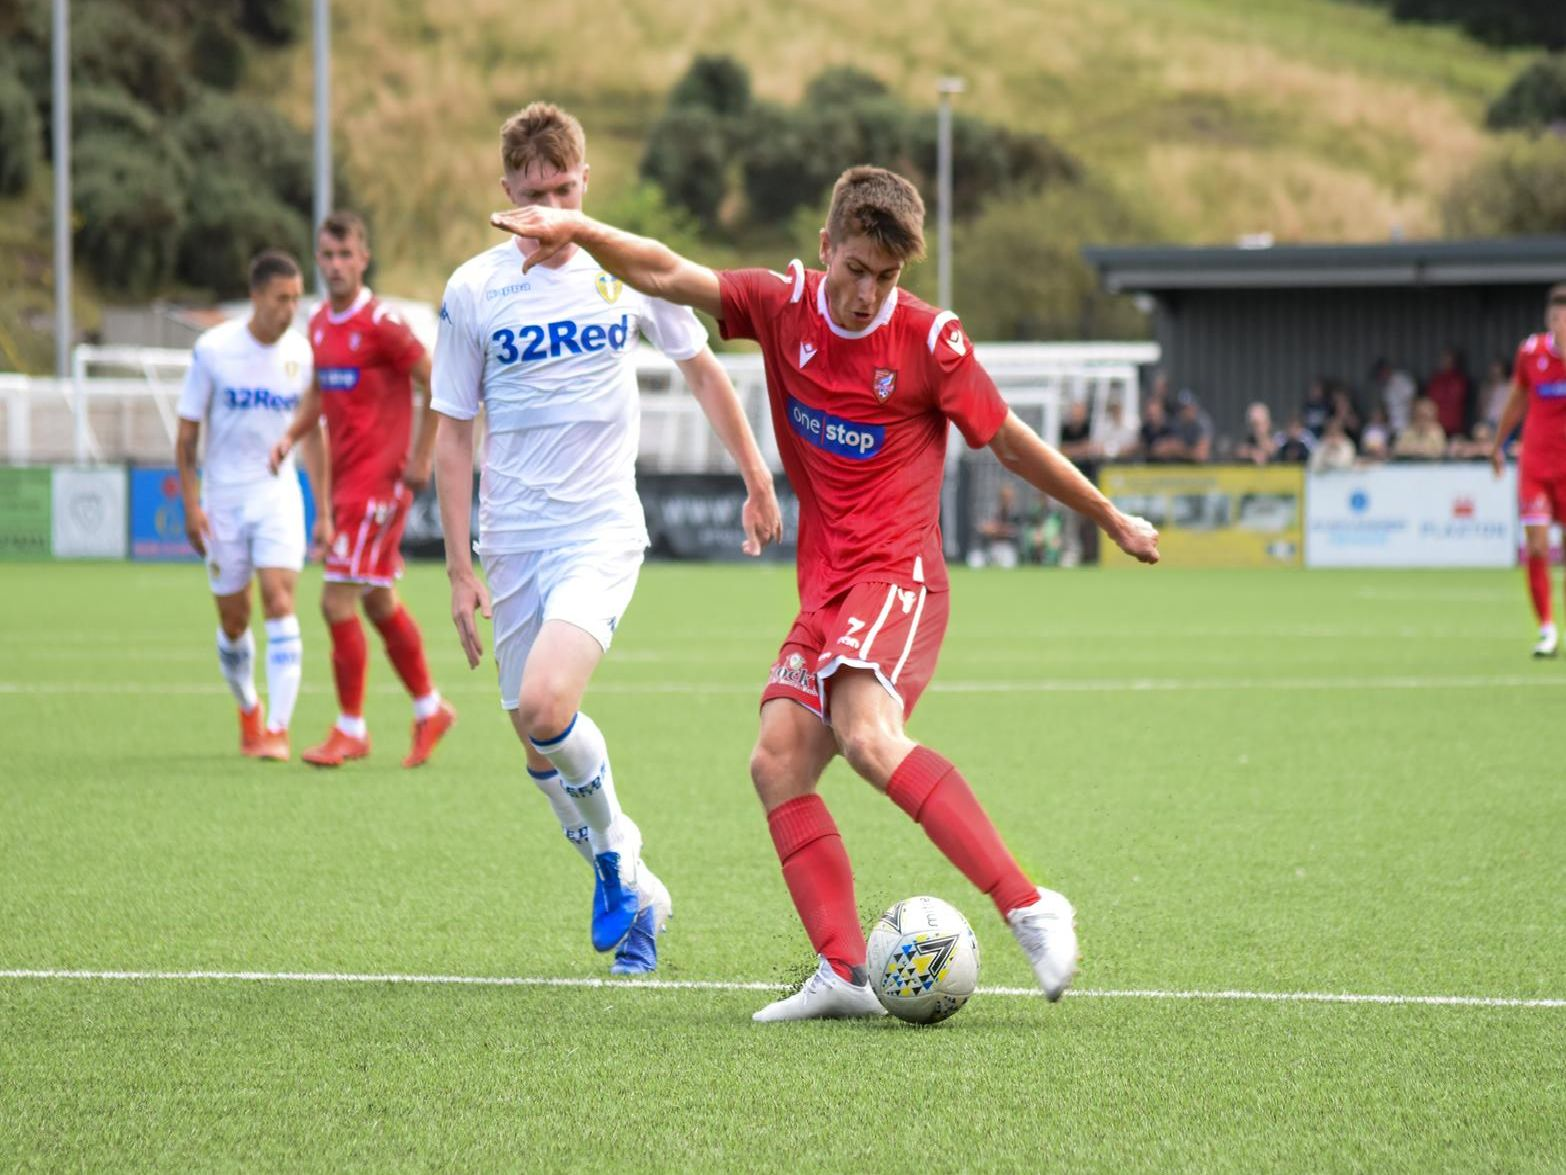 Scarborough Athletic 2-3 Leeds United / Pictures by Morgan Exley